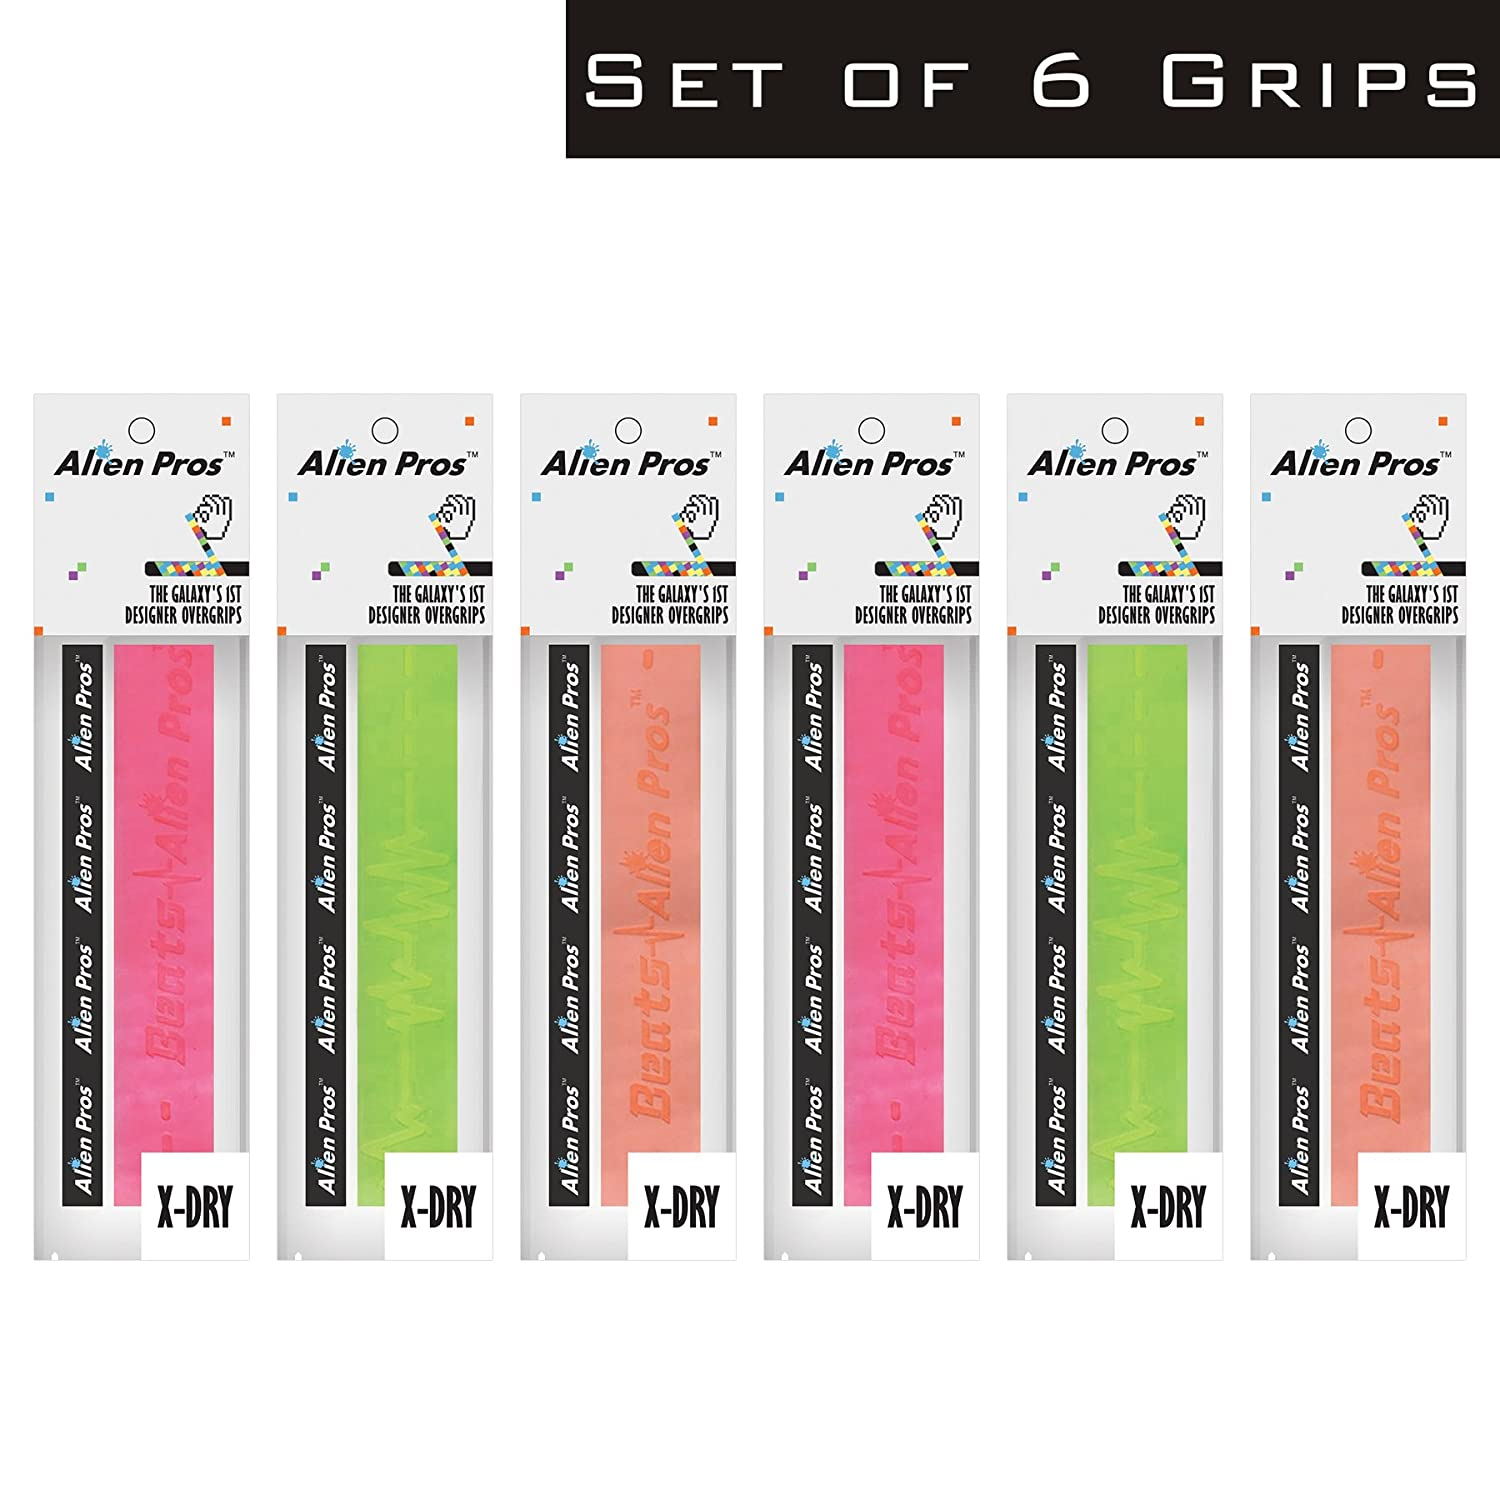 Alien Pros X-Dry Badminton Grip Tape Improve Your Hand Grip and Protect Your Badminton Rackets with New overgrip Tape from Alien in a Variety of Styles 6-Pack